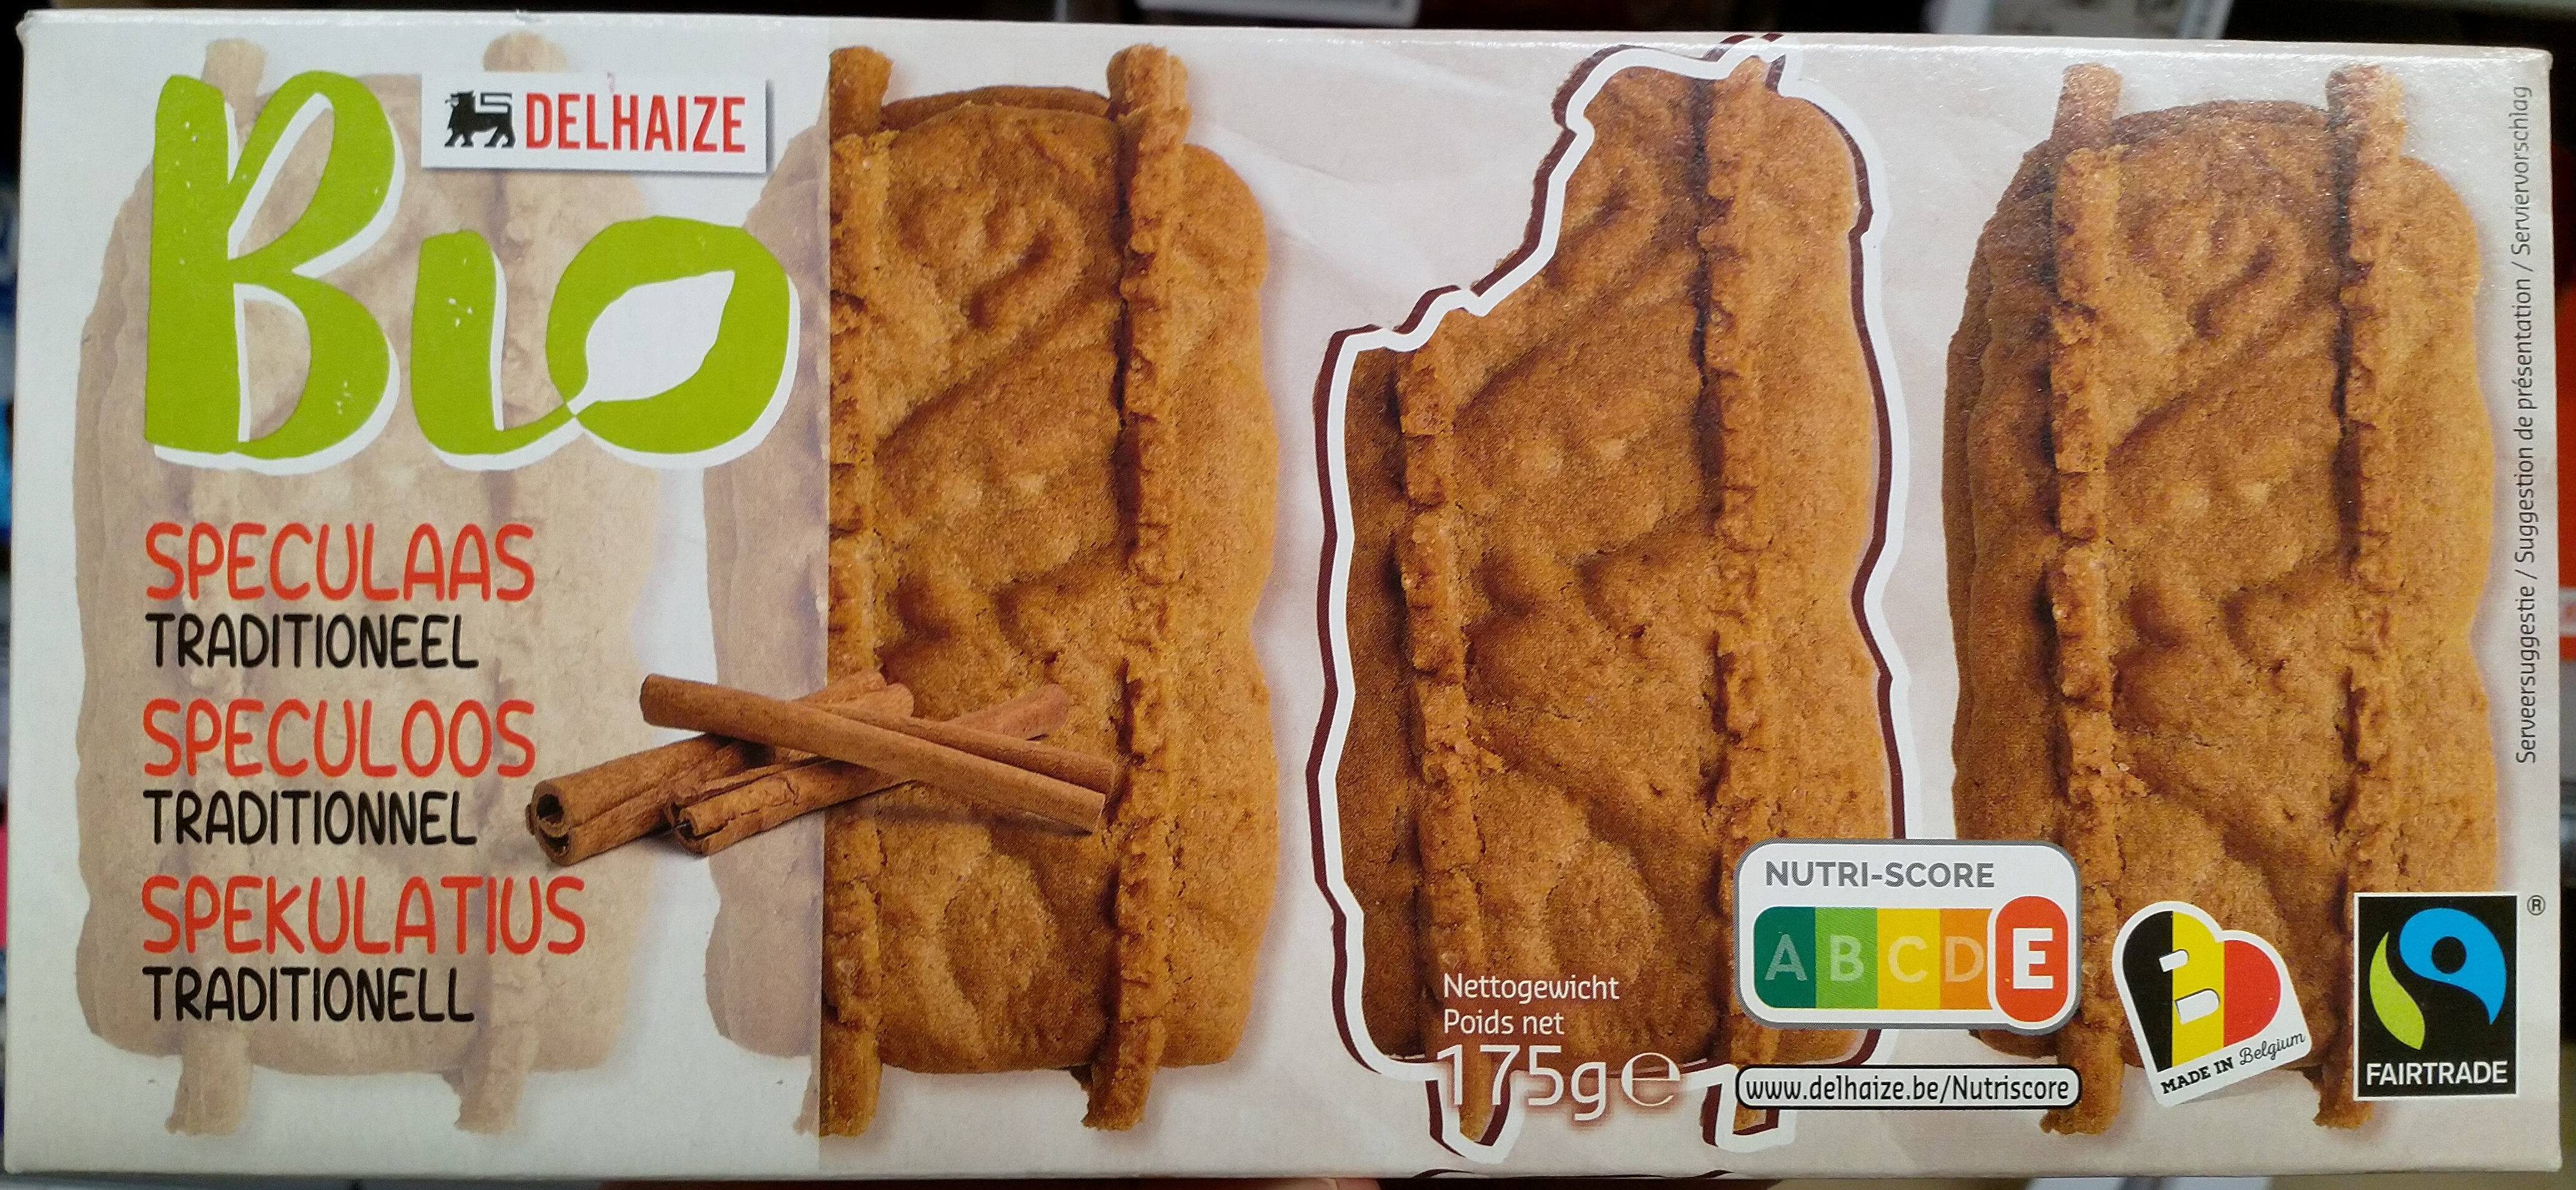 Speculoos traditionel Artisanal - Prodotto - fr